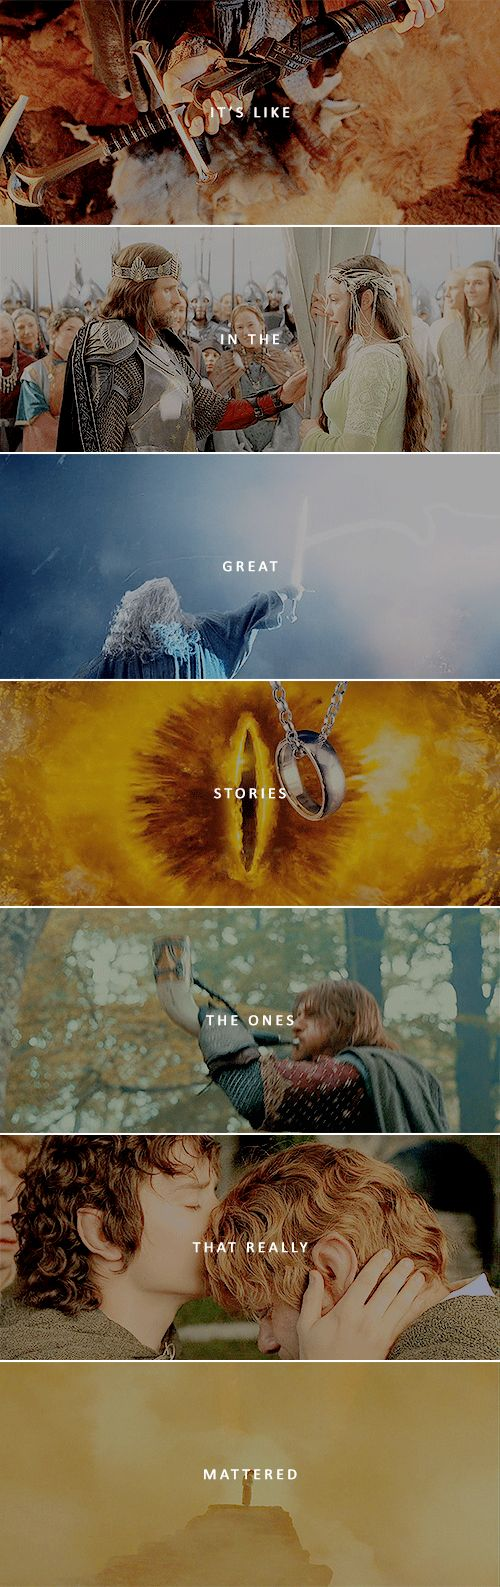 Those were the stories that stayed with you, that meant something, even if you were too small to understand why. #lotr #TheLordoftheRings